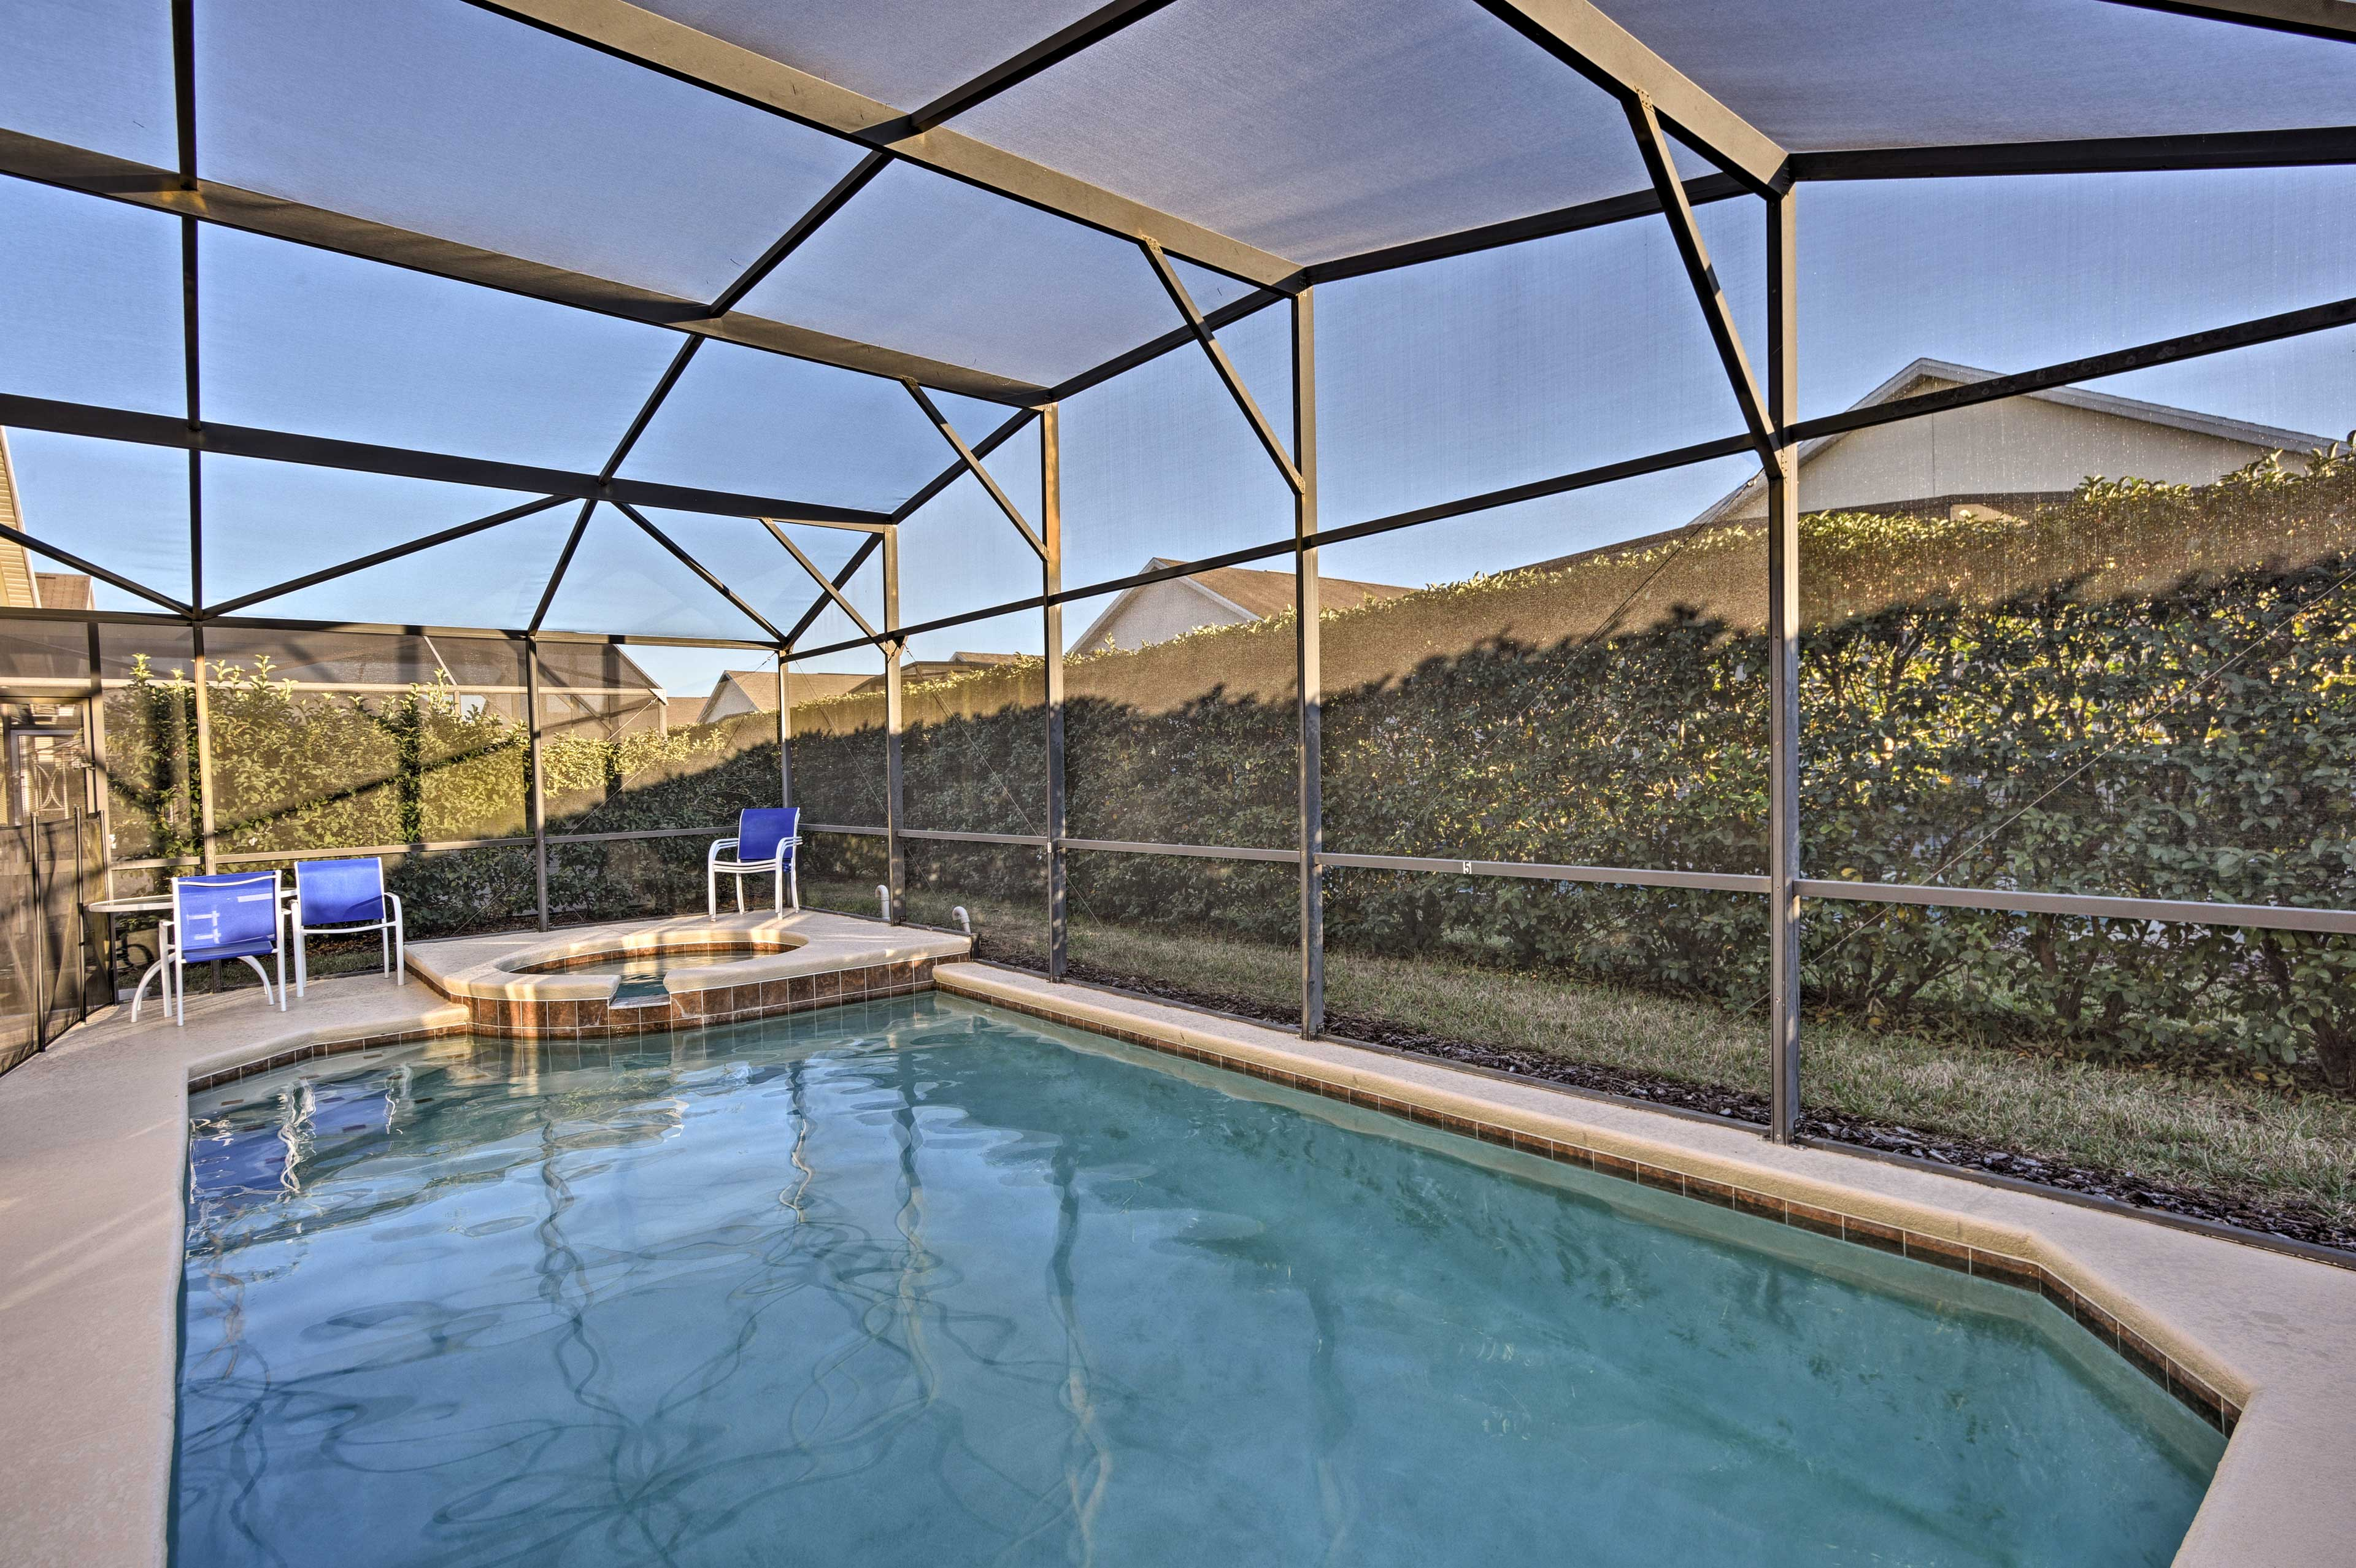 Spend sunny days lounging poolside in your private backyard!